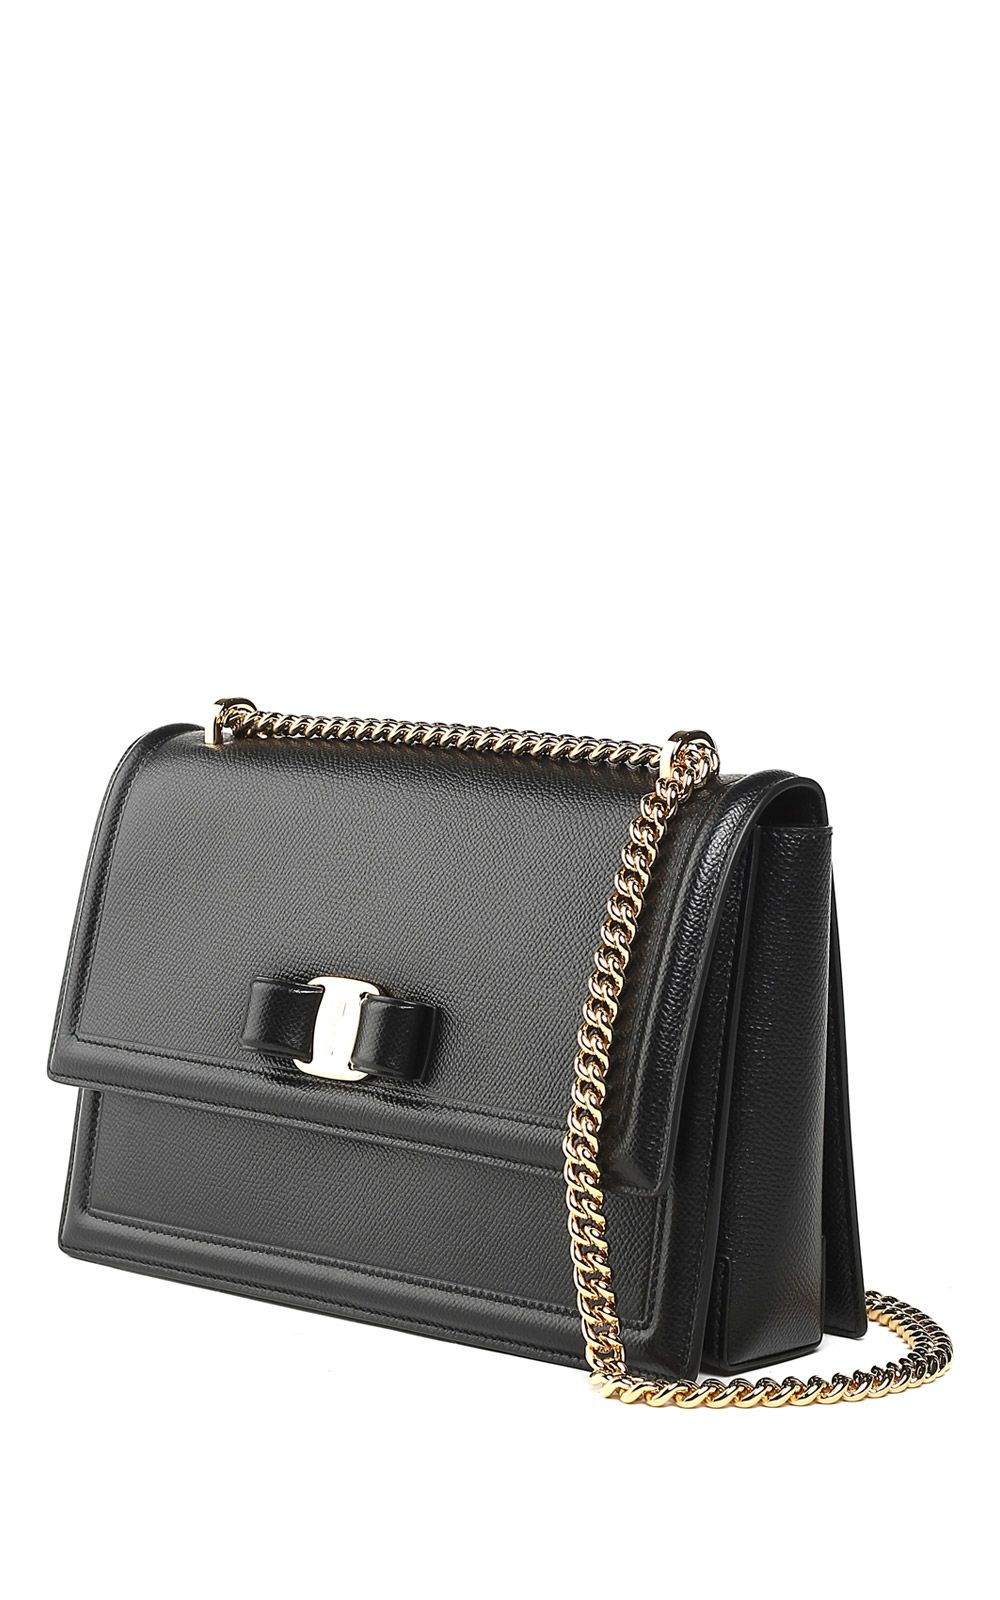 1d3b2deba048 Salvatore Ferragamo Ginny Pebbled-Leather Shoulder Bag In Nero ...